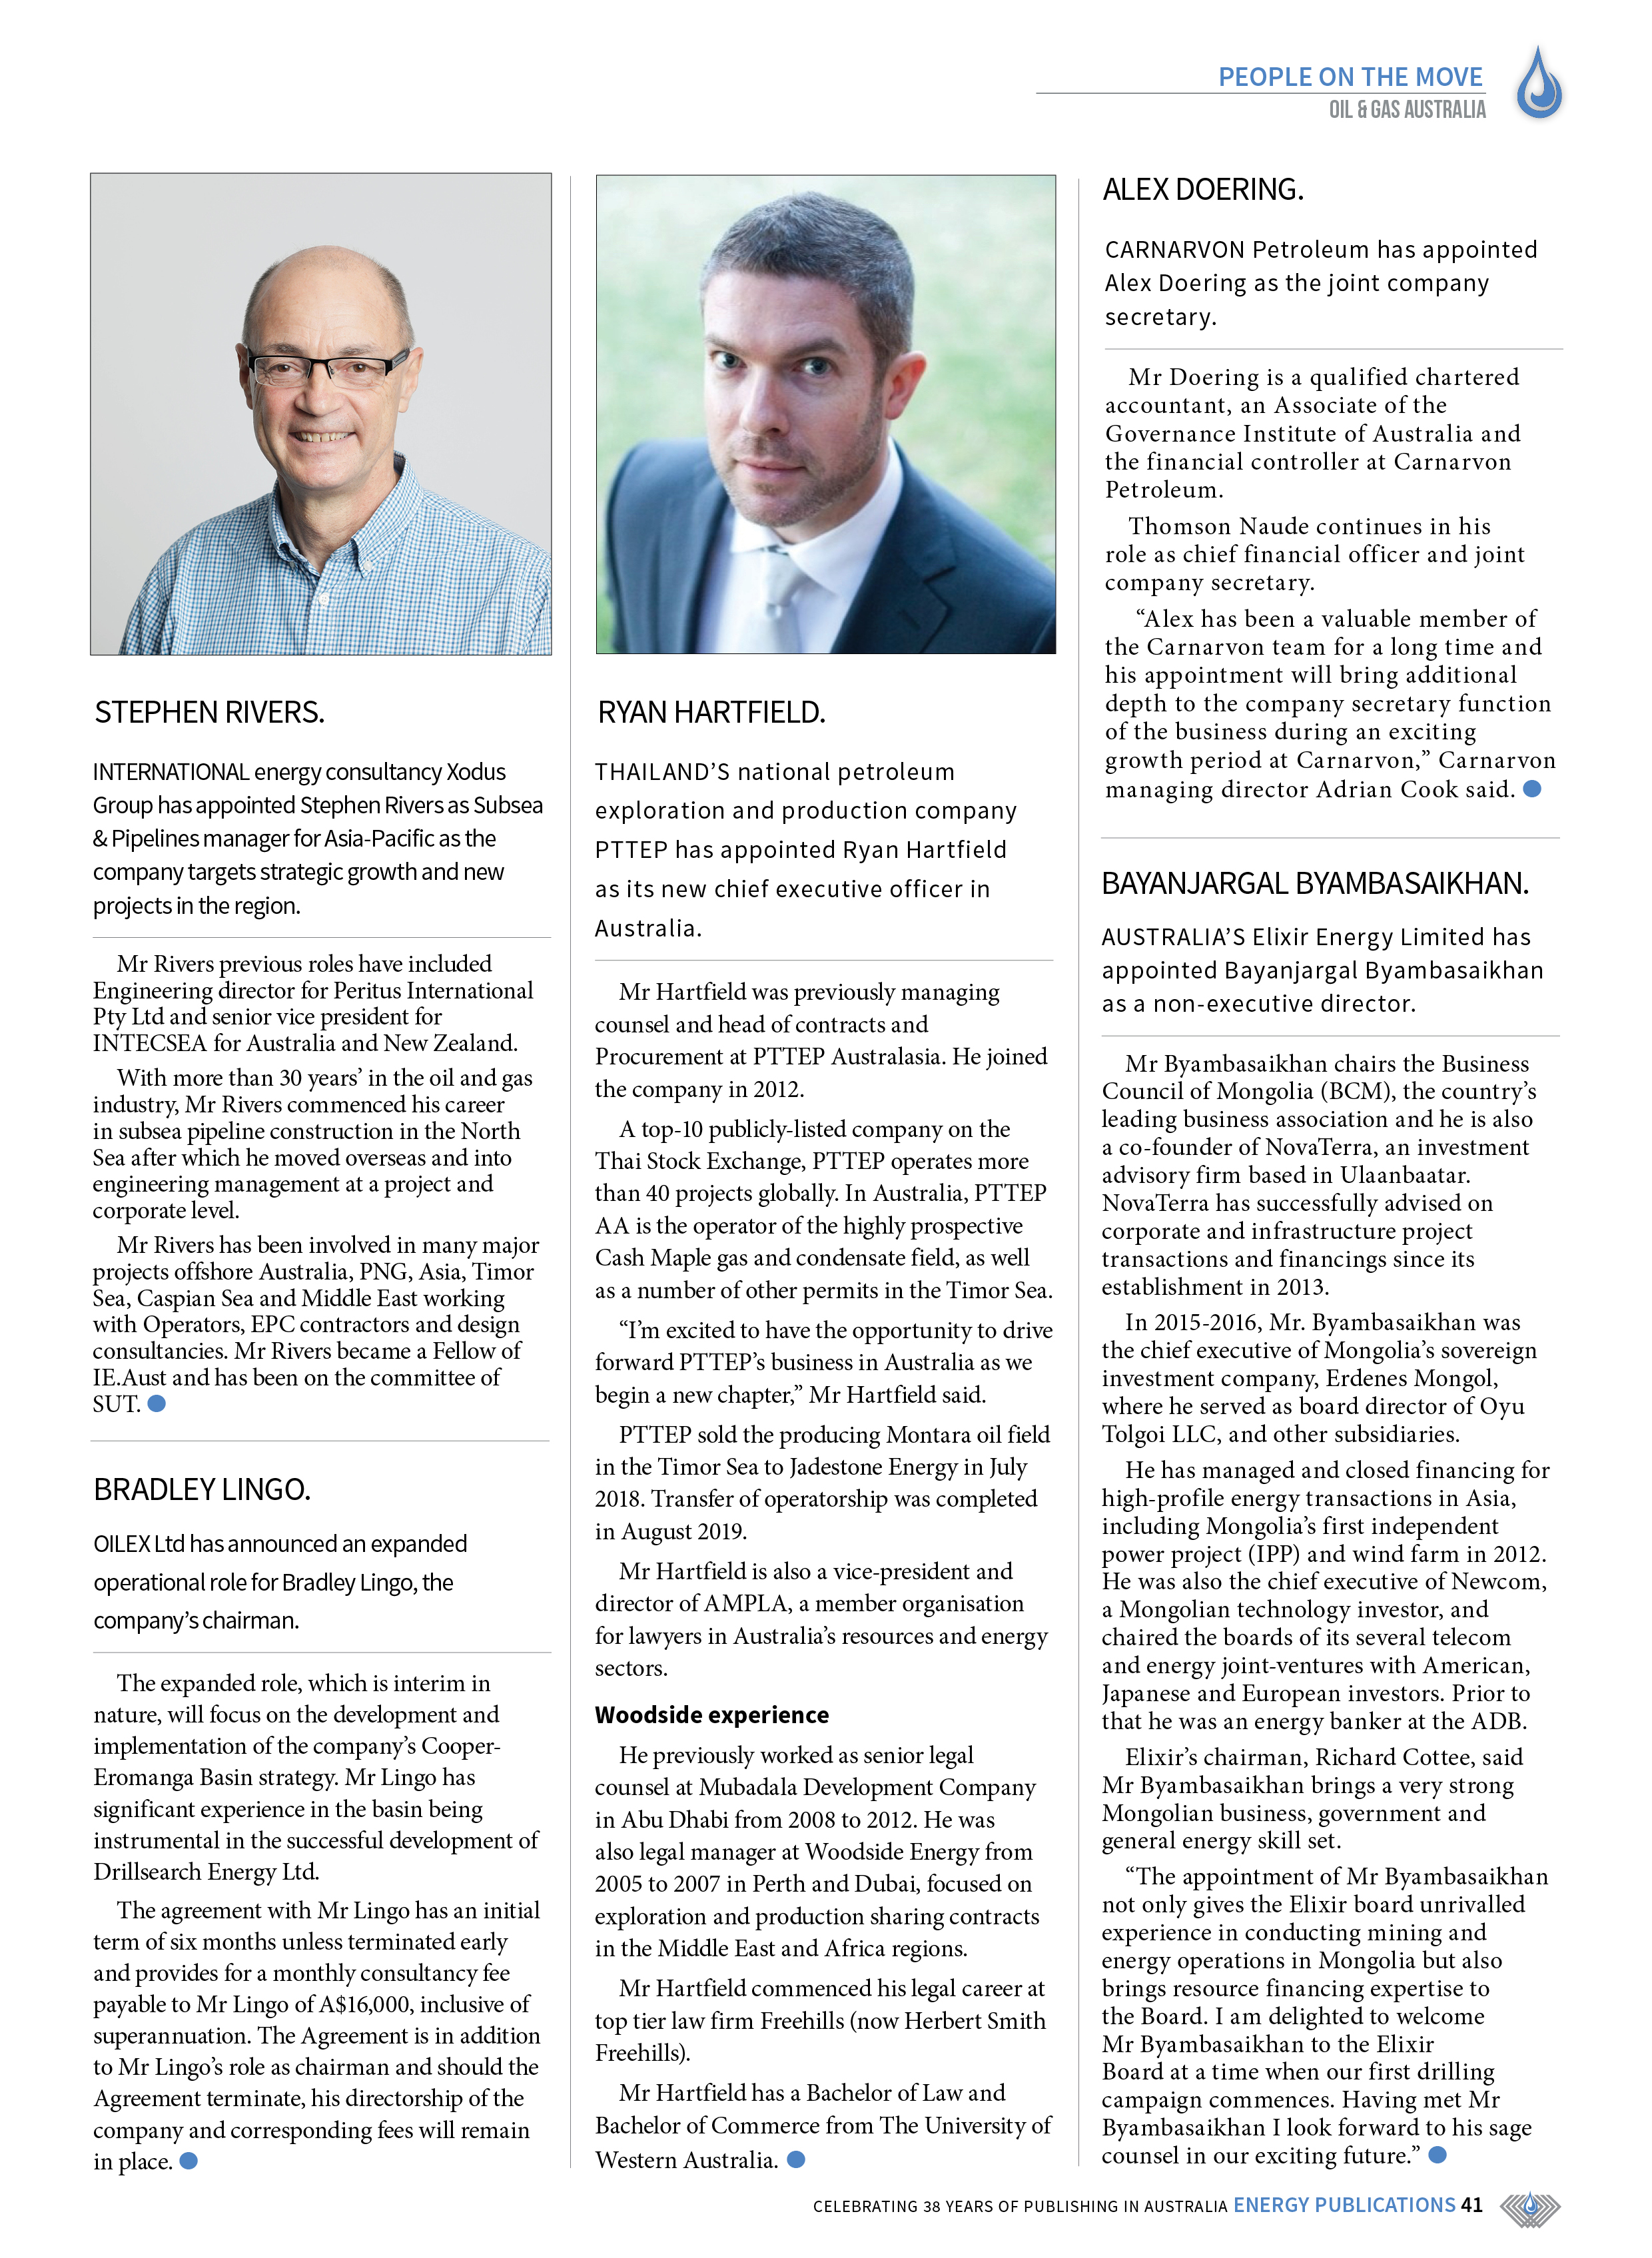 Oil & Gas Australia – October 2019 – Page 43